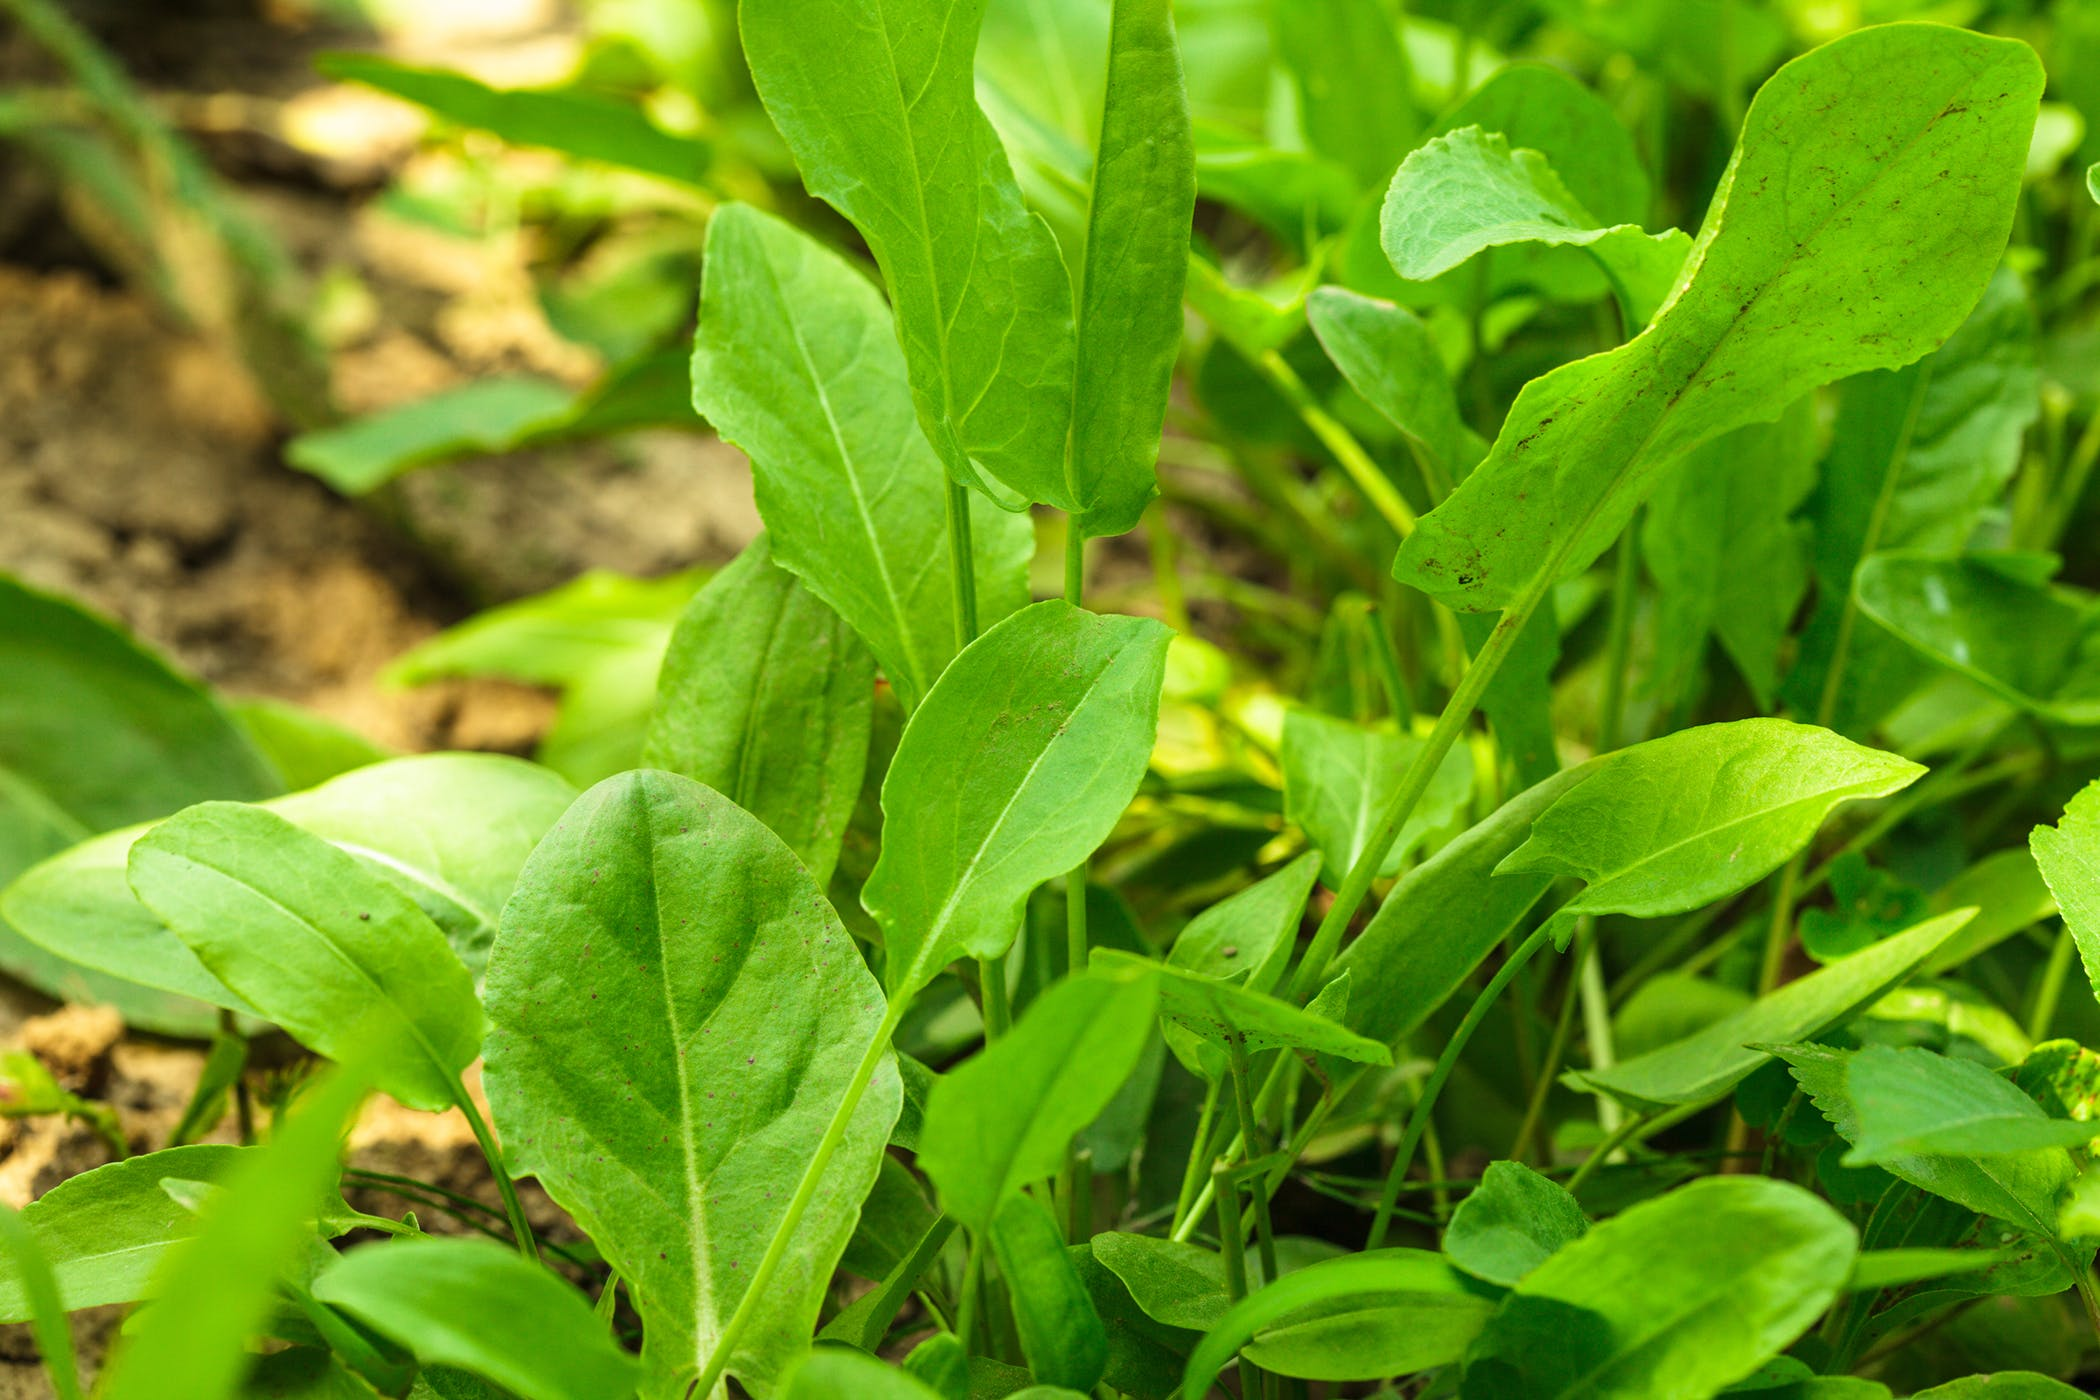 Garden Sorrel Poisoning in Dogs - Symptoms, Causes ... Garden Sorrel